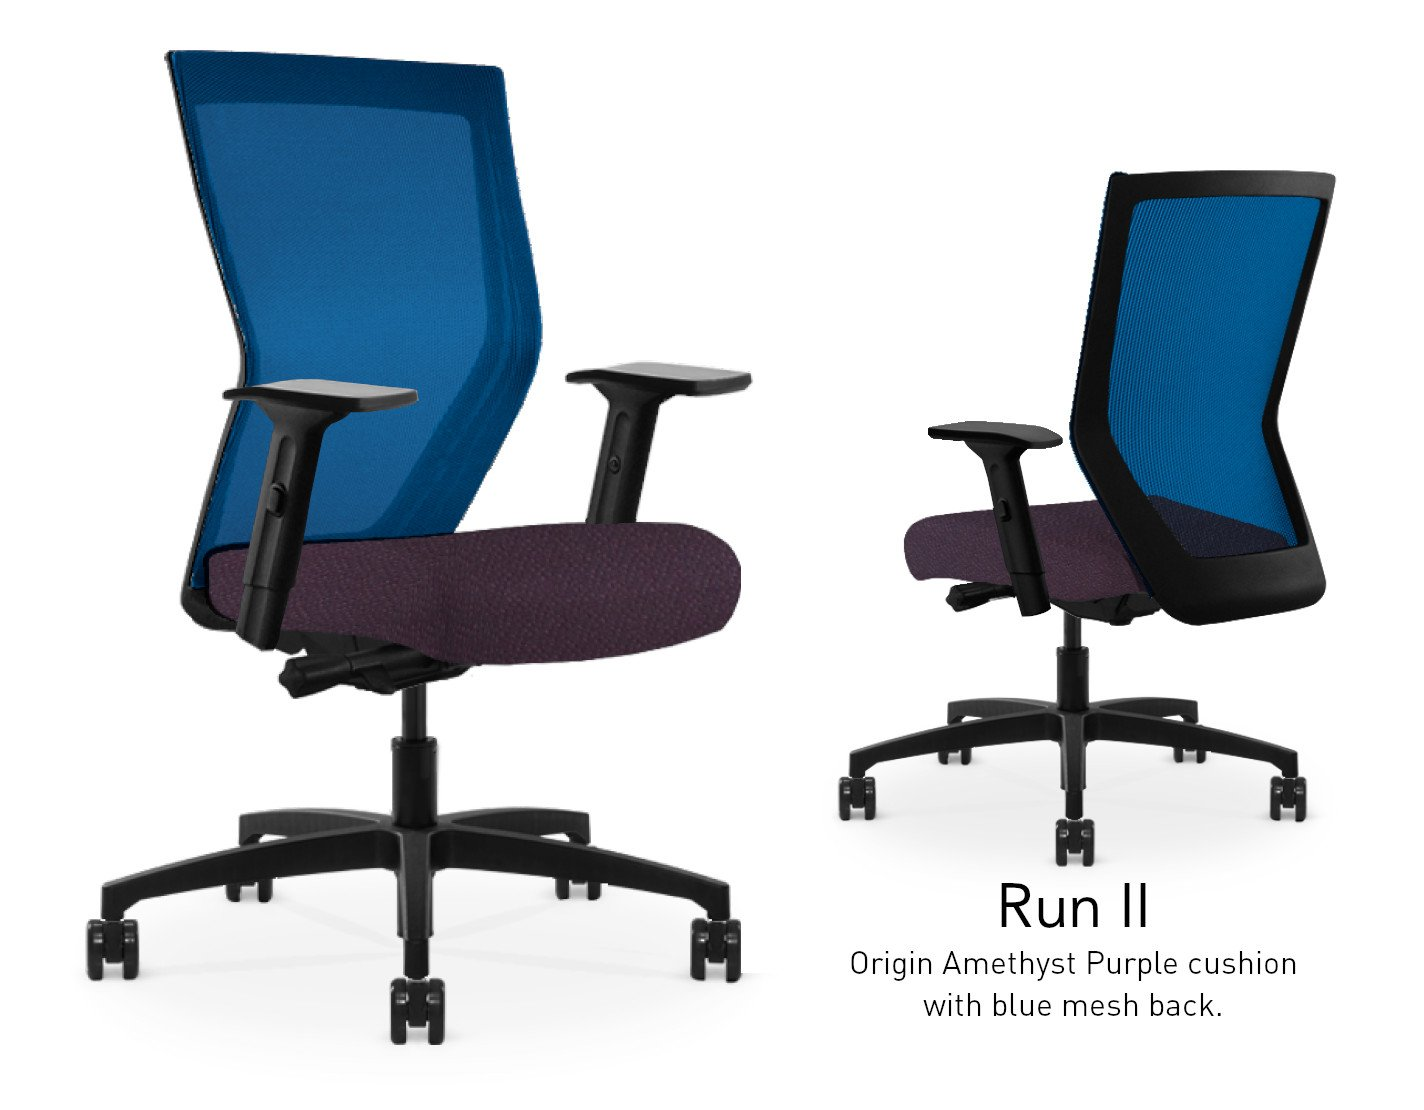 Composite image of a Run II high-back chair, front and back. It has a dark purple cushion seat, adjustable arms, and blue mesh back.